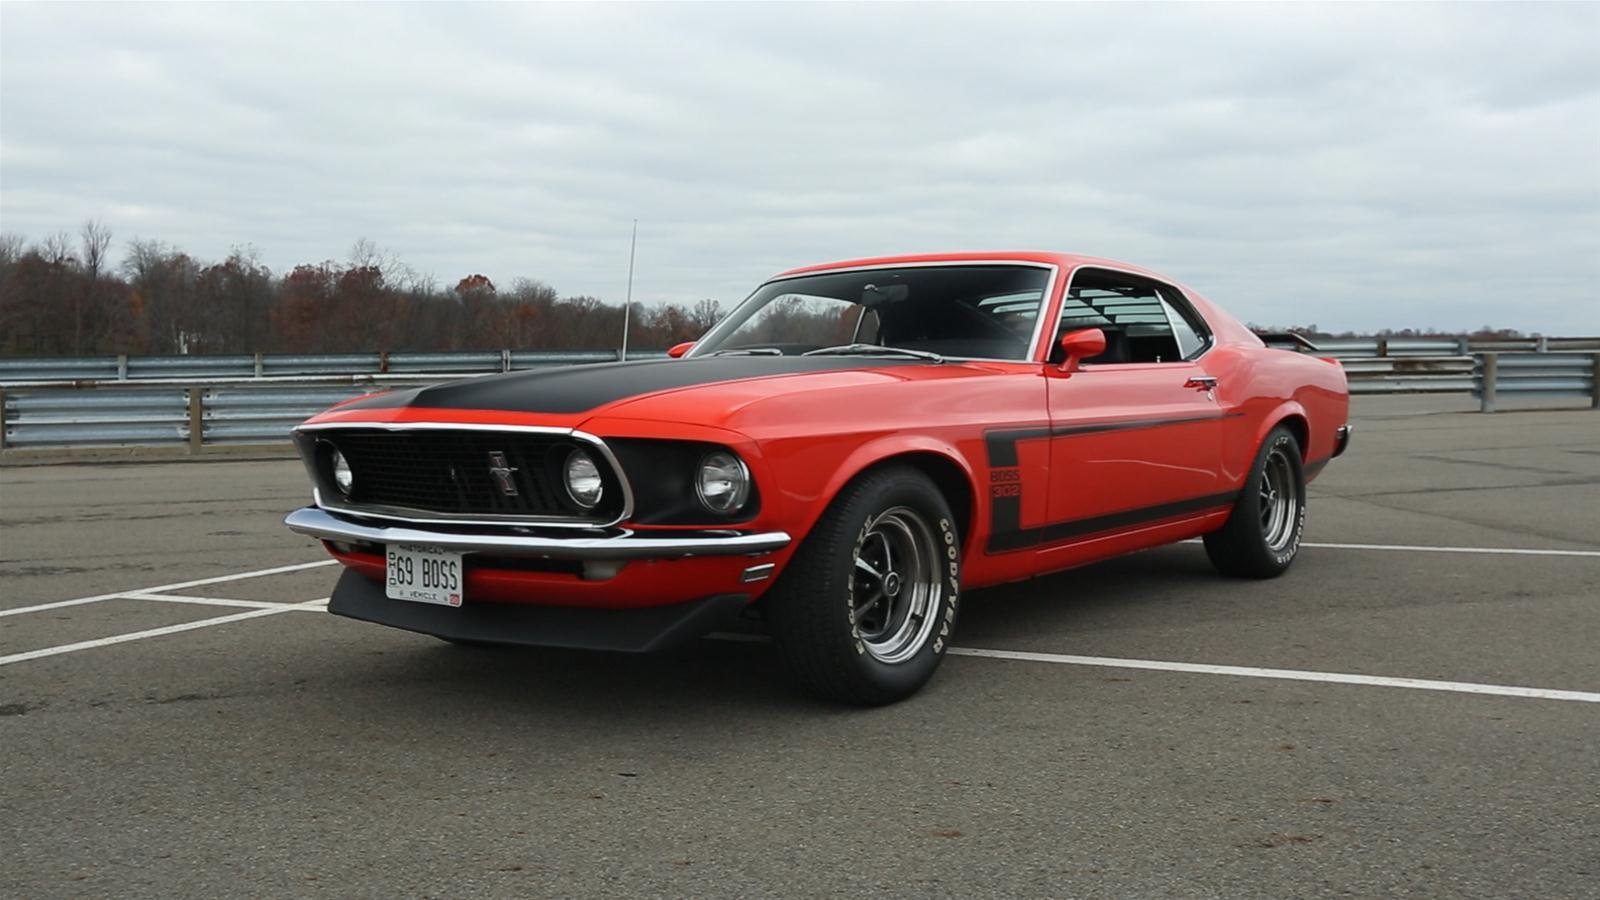 hight resolution of fat n furious 1969 ford mustang boss 302 engine combos sum csumfffm20 free shipping on orders over 99 at summit racing